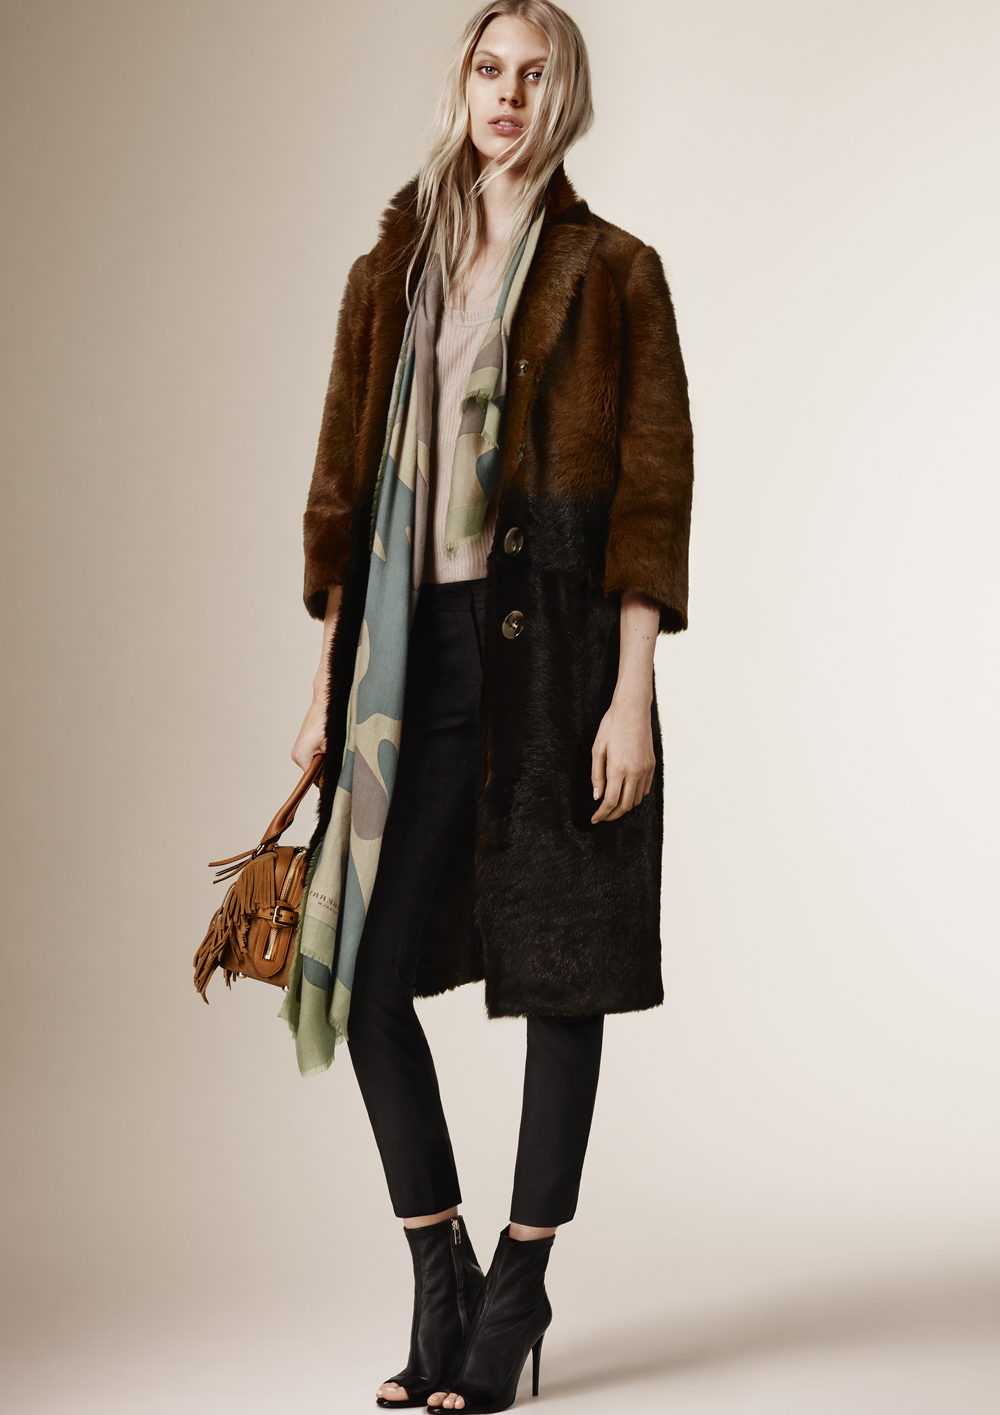 Burberry_Prorsum_Womenswear_Autumn_Winter_2015_Pre-Collection_02